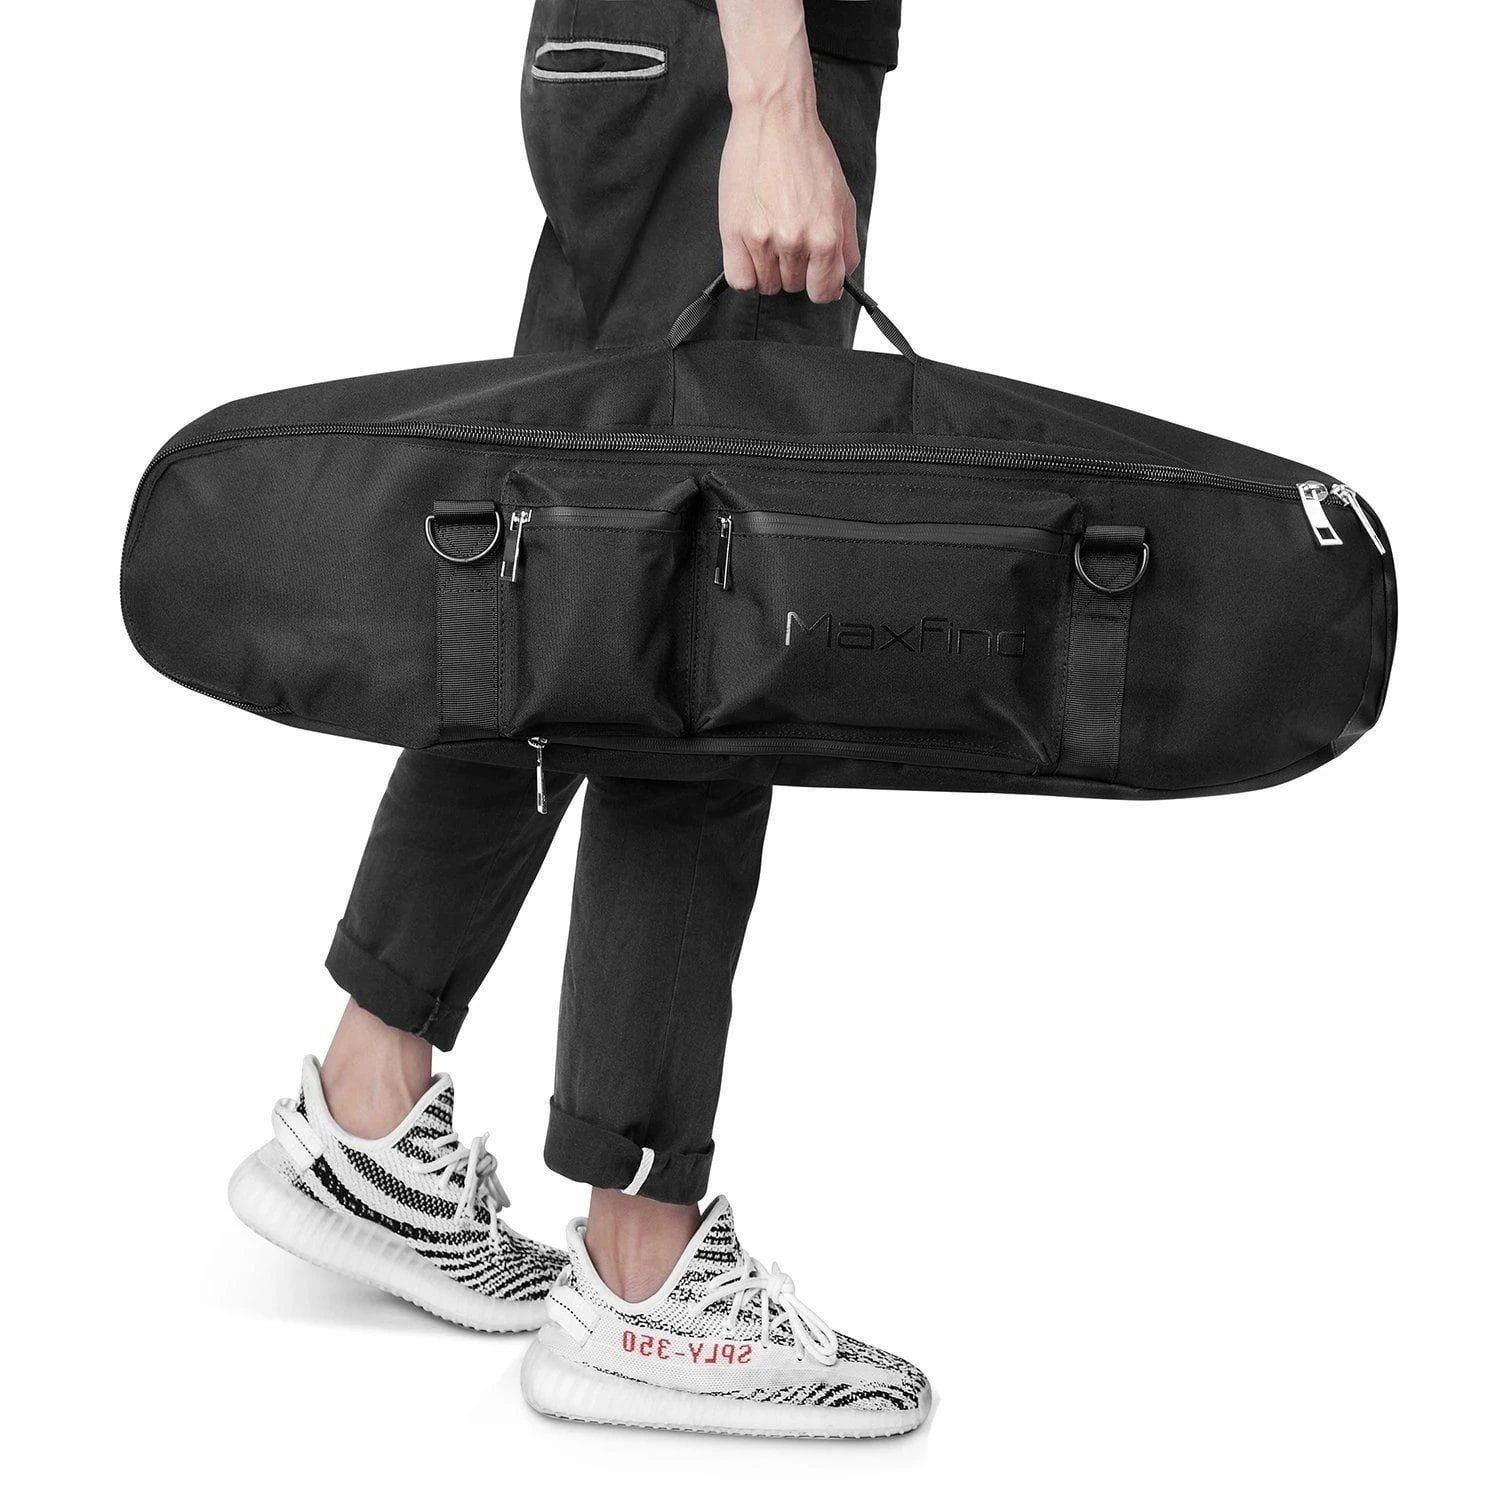 Maxfind Electric Skateboard Bag - Maxfind